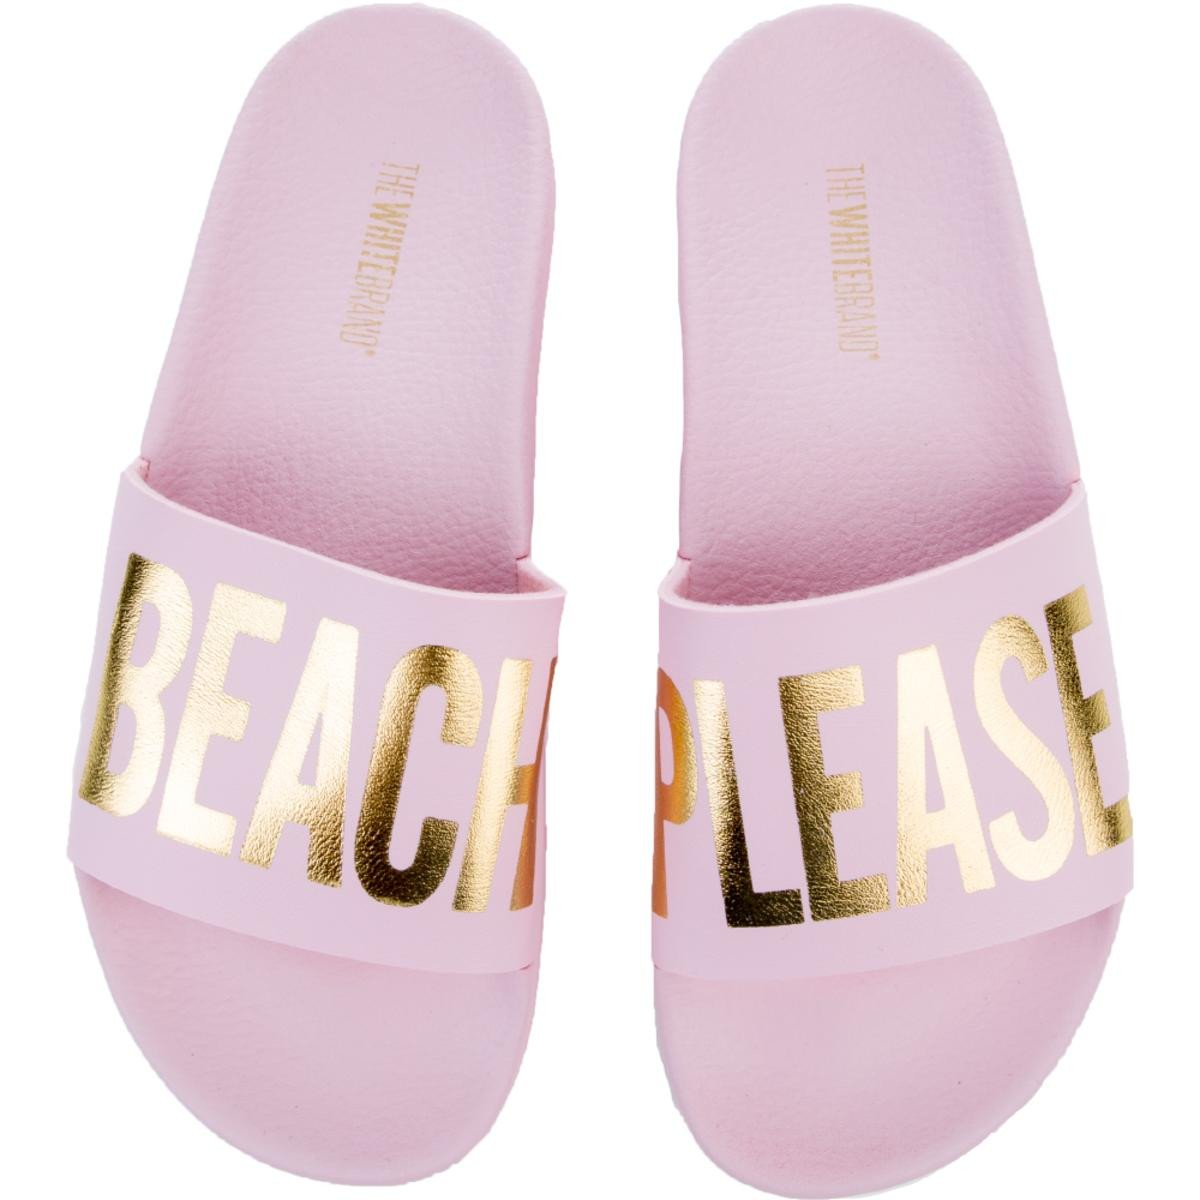 Women's Beach Please Slides in Pink